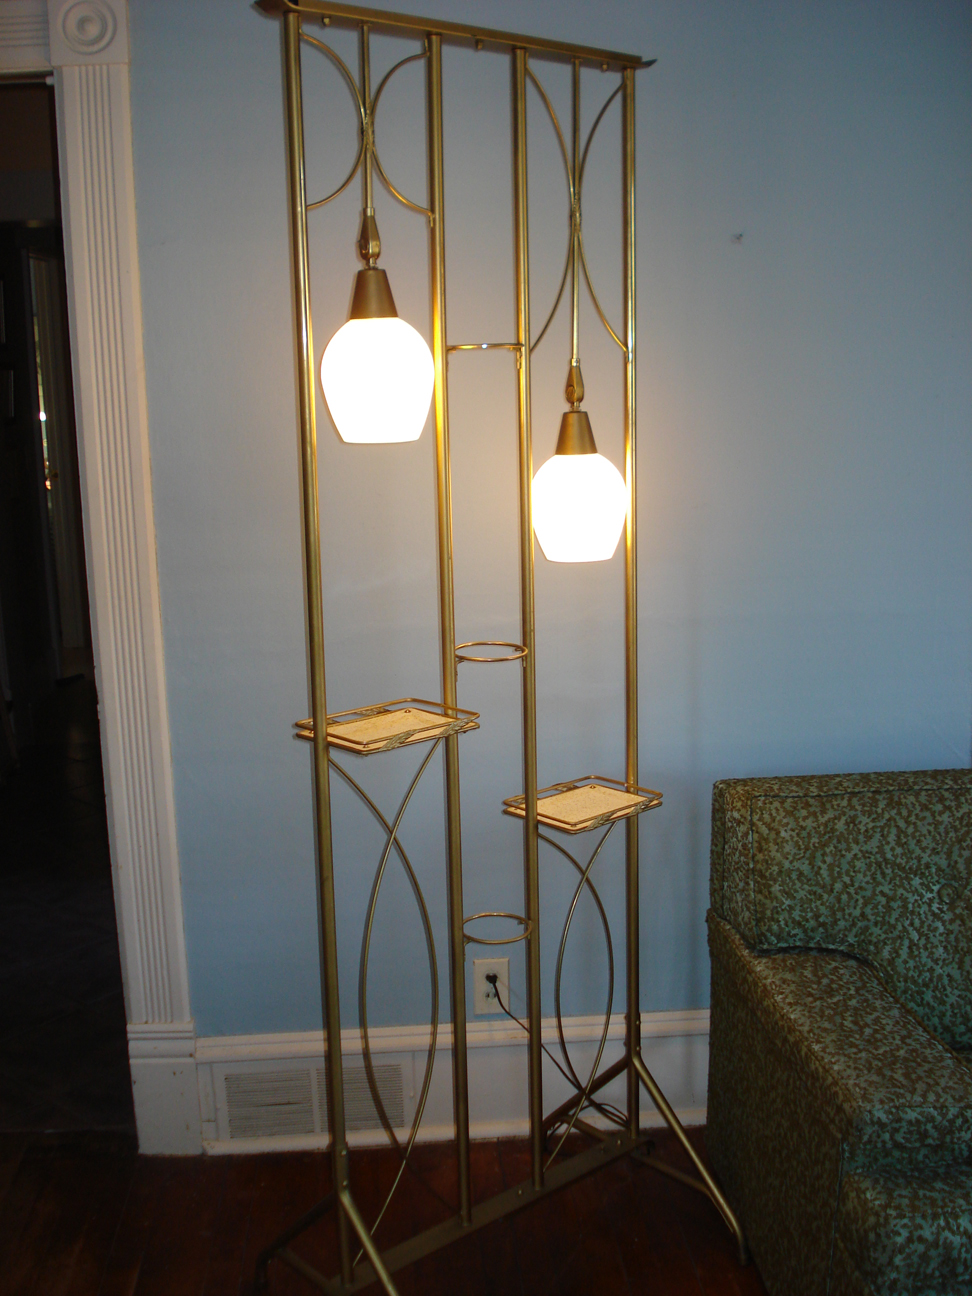 Lamp / room divider / plant stand